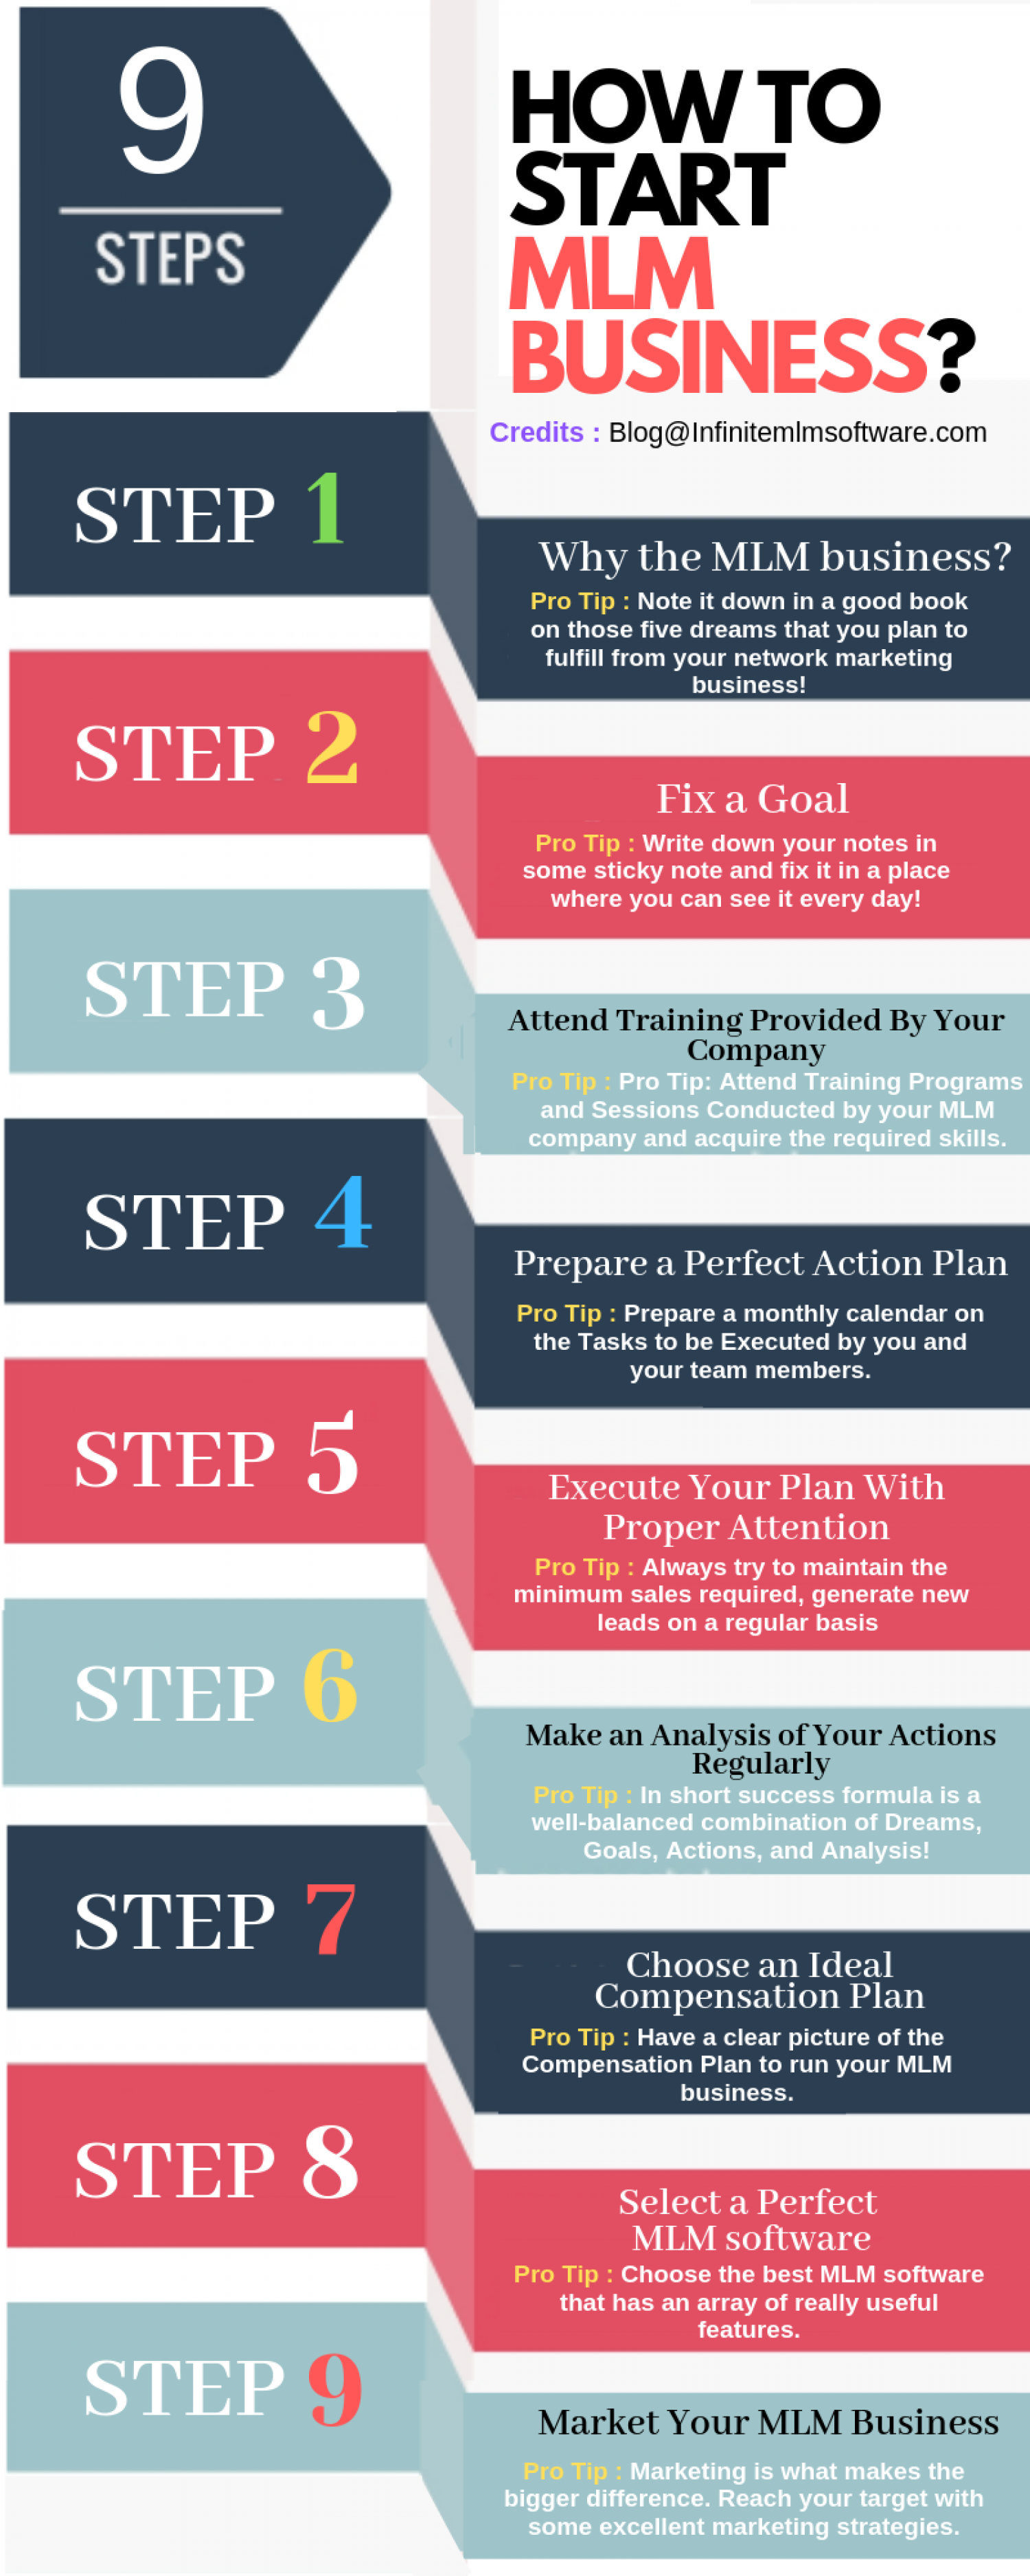 How to start MLM Business - Network Marketing opportunity Infographic